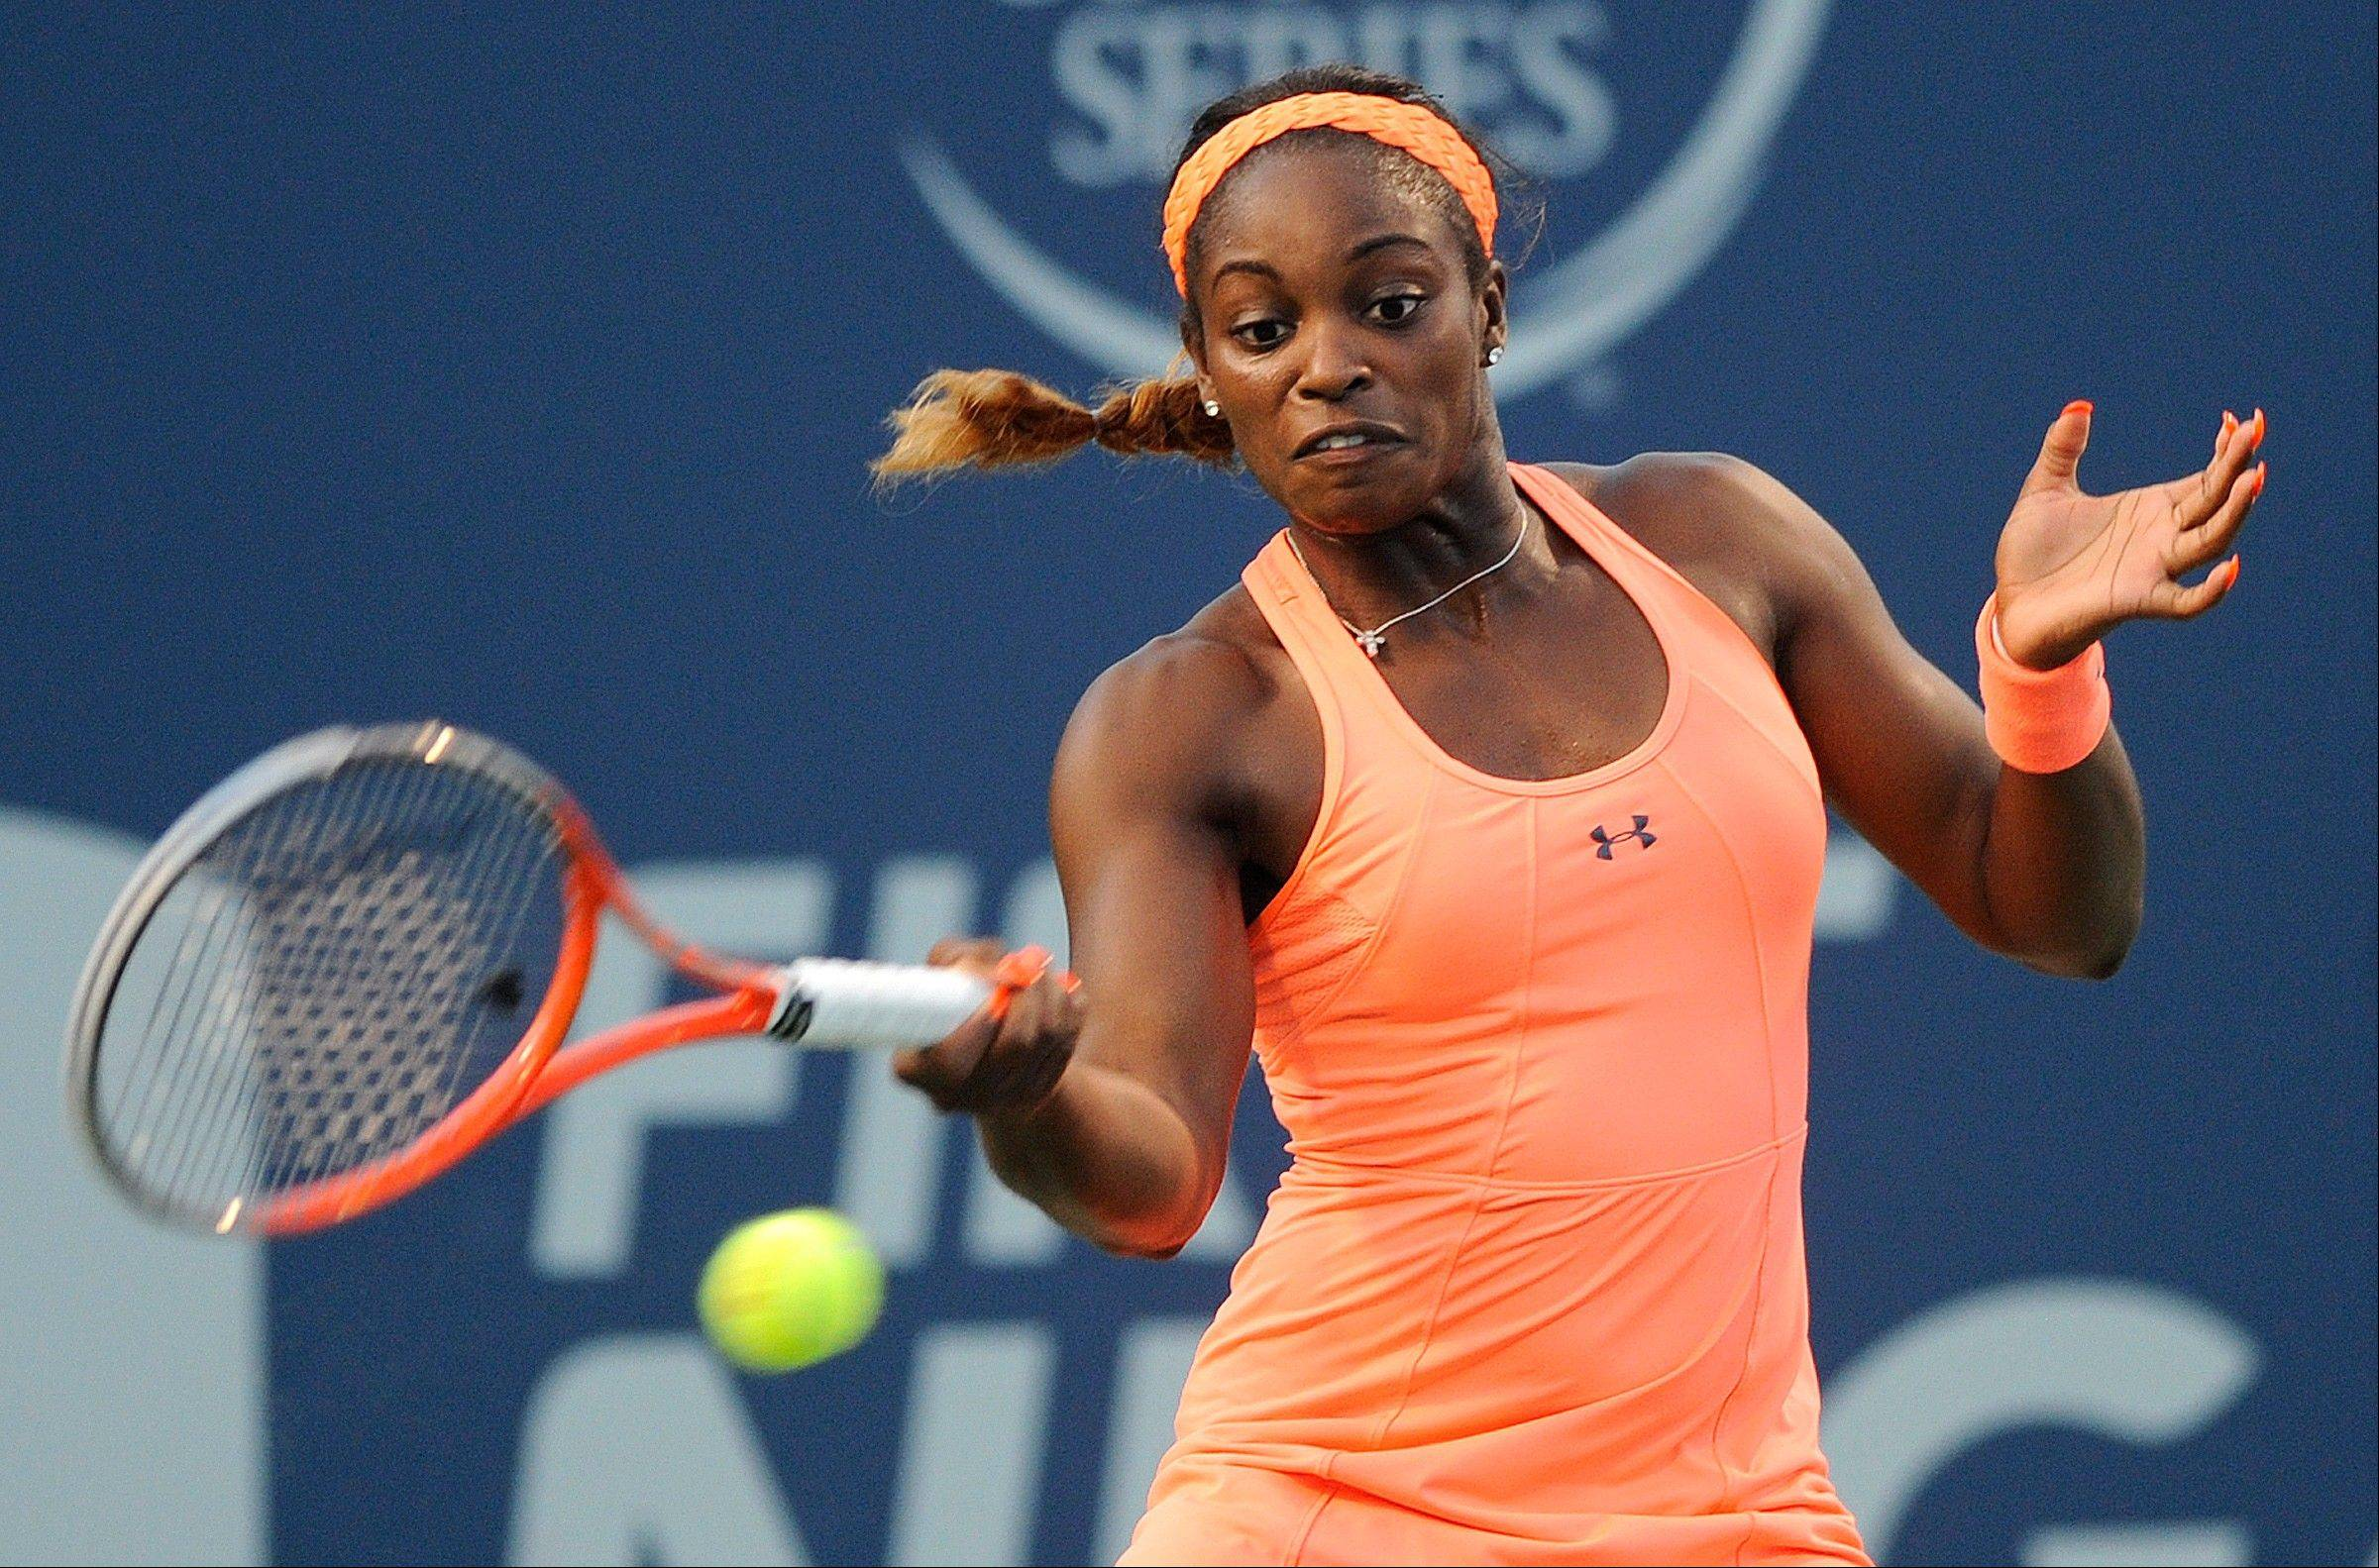 Sloane Stephens hits a forehand during her quarterfinal match against Caroline Wozniacki at the New Haven Open tennis tournament on Thursday. Stephens upset Serena Williams at the Australian Open this year.